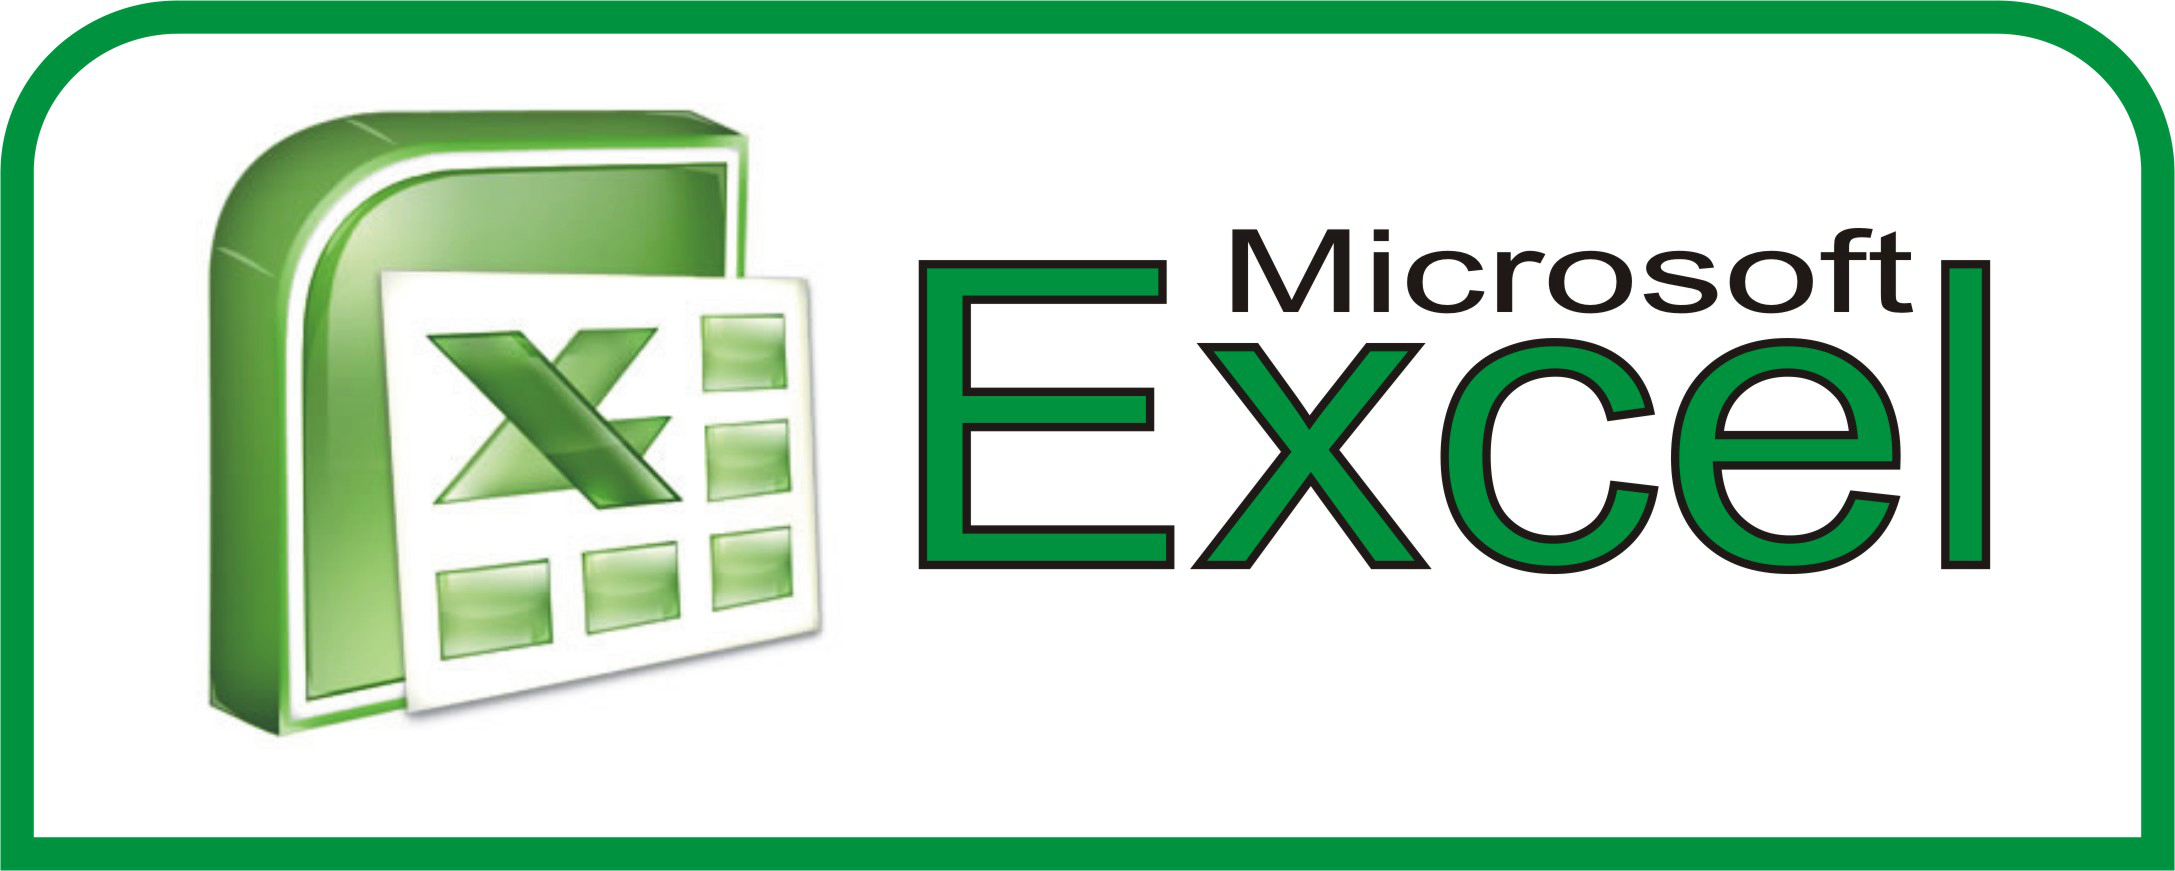 Ediblewildsus  Scenic  Excel Shortcuts You Probably Didnt Know About  Techdissected With Lovable Relative Frequency In Excel Besides Excel Vba Copy File Furthermore Rept Excel With Cute Excel Honda Also Excel Free Templates In Addition Excel Kutools And Least Squares Method Excel As Well As Scorecard Template Excel Additionally Excel Draw Line From Techdissectedcom With Ediblewildsus  Lovable  Excel Shortcuts You Probably Didnt Know About  Techdissected With Cute Relative Frequency In Excel Besides Excel Vba Copy File Furthermore Rept Excel And Scenic Excel Honda Also Excel Free Templates In Addition Excel Kutools From Techdissectedcom